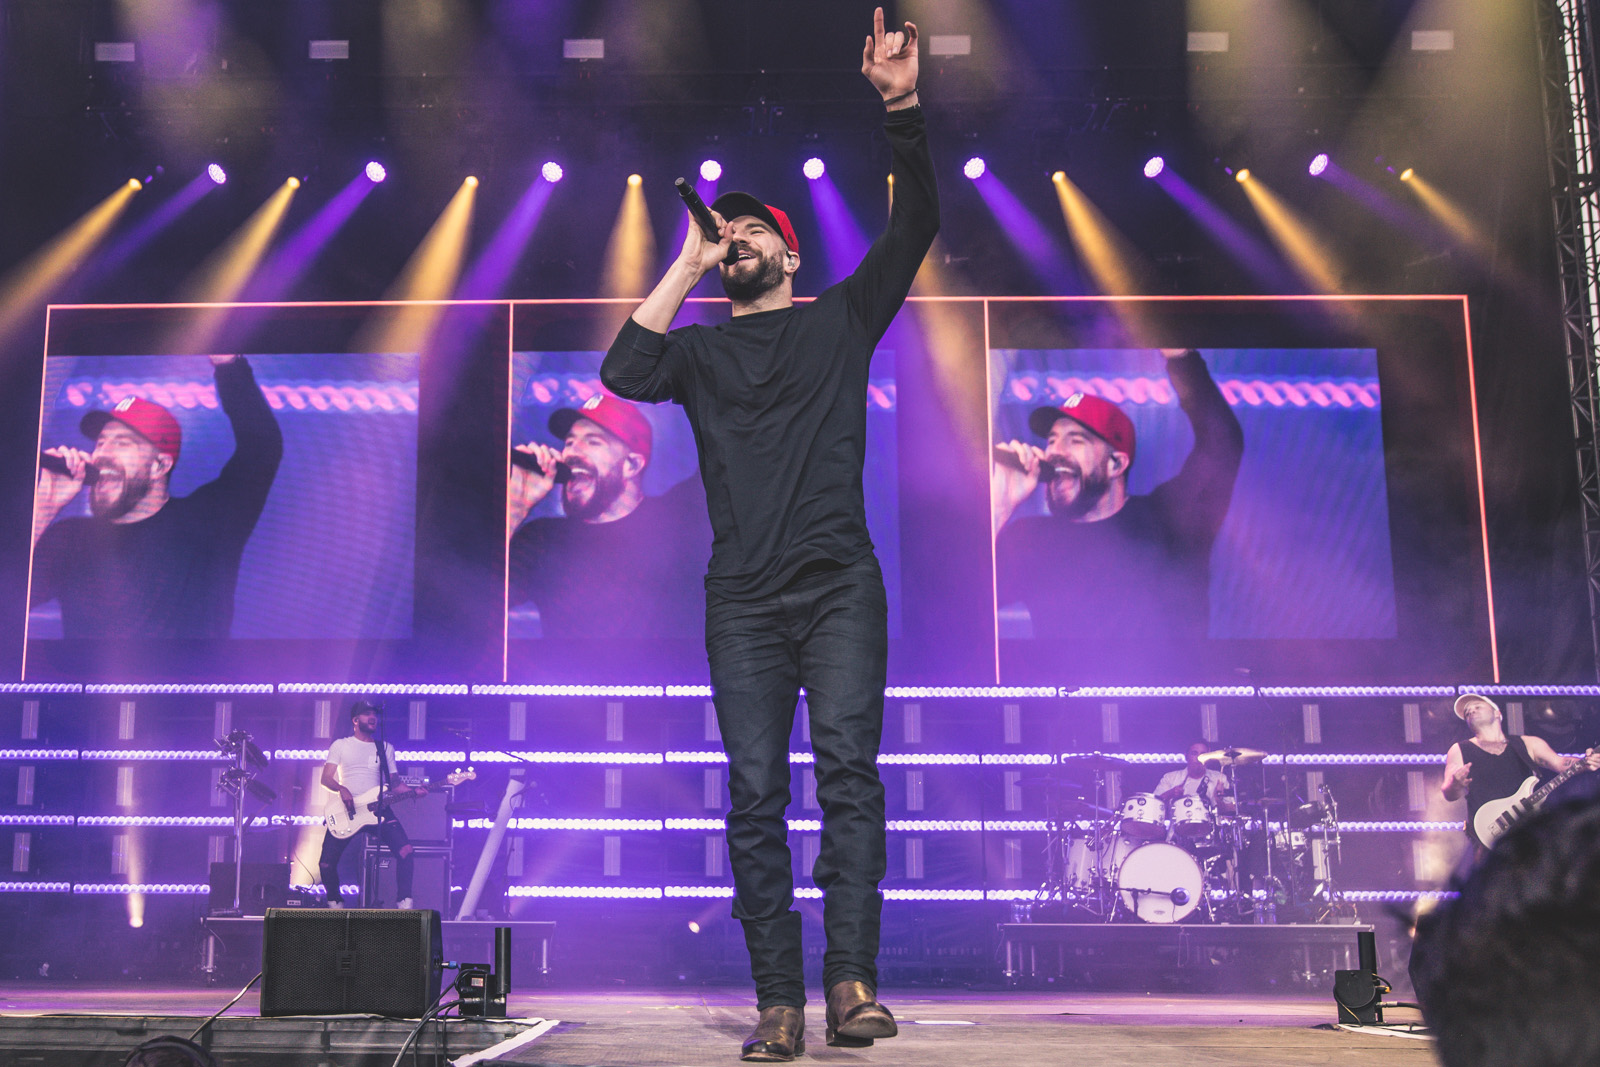 Sam Hunt headlined Sunday night in front of a sold-out crowd at 6th Annual Taste of Country Music Festival. Photo credit: Patrick Tewey/Taste of Country Music Festival